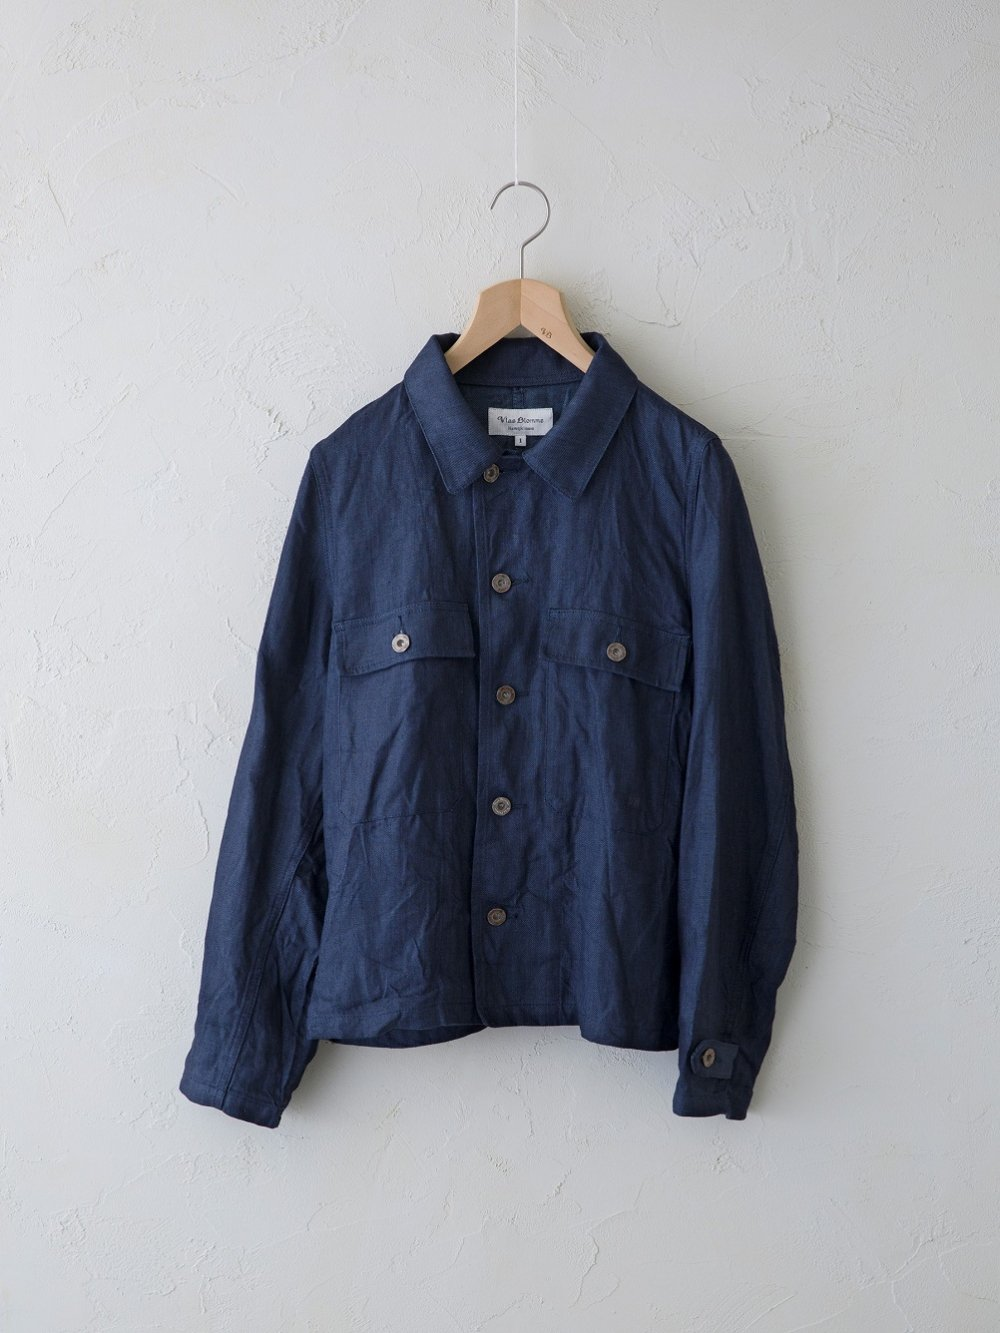 KL Denim ブルゾン(Ladies'&Men's)